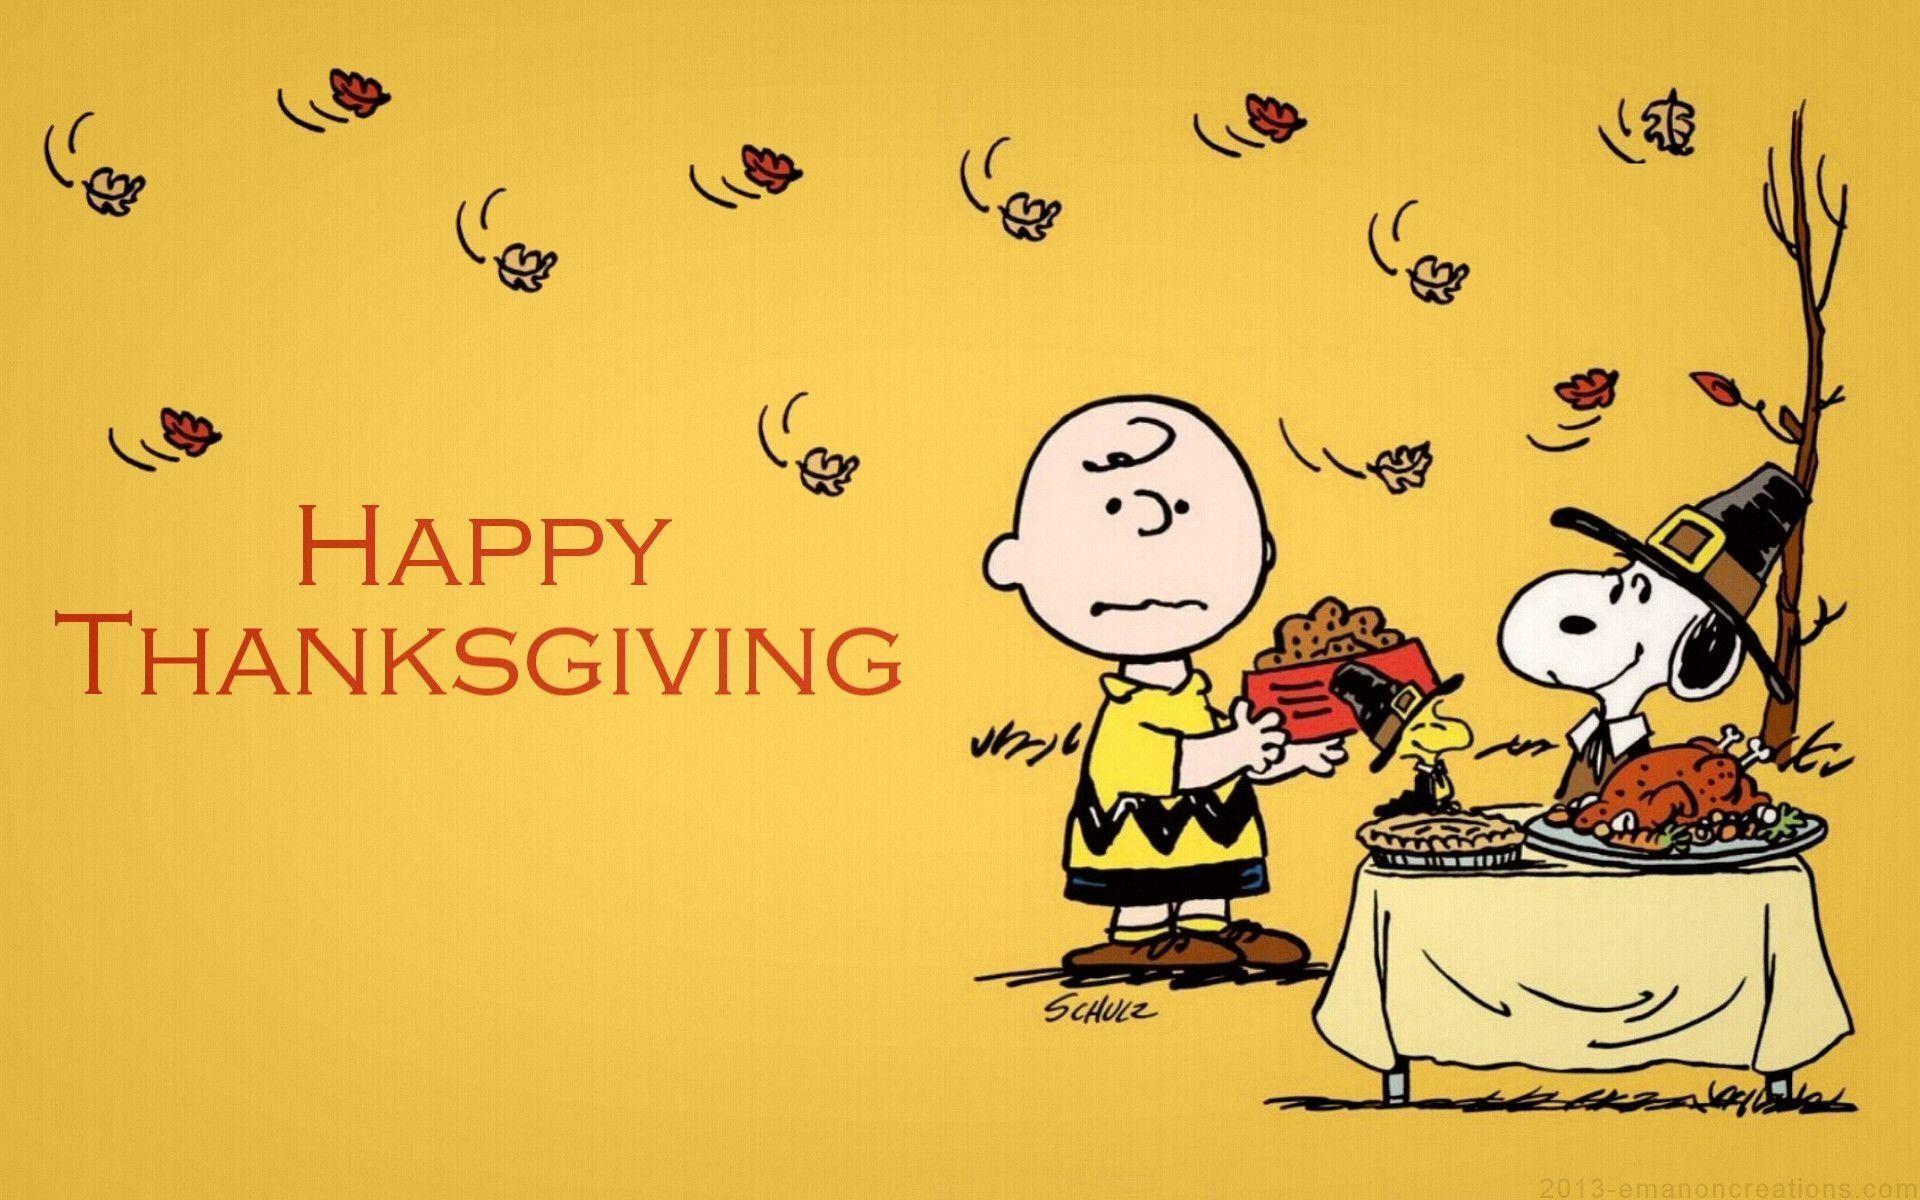 Thanksgiving Snoopy Wallpaper (45+ images)